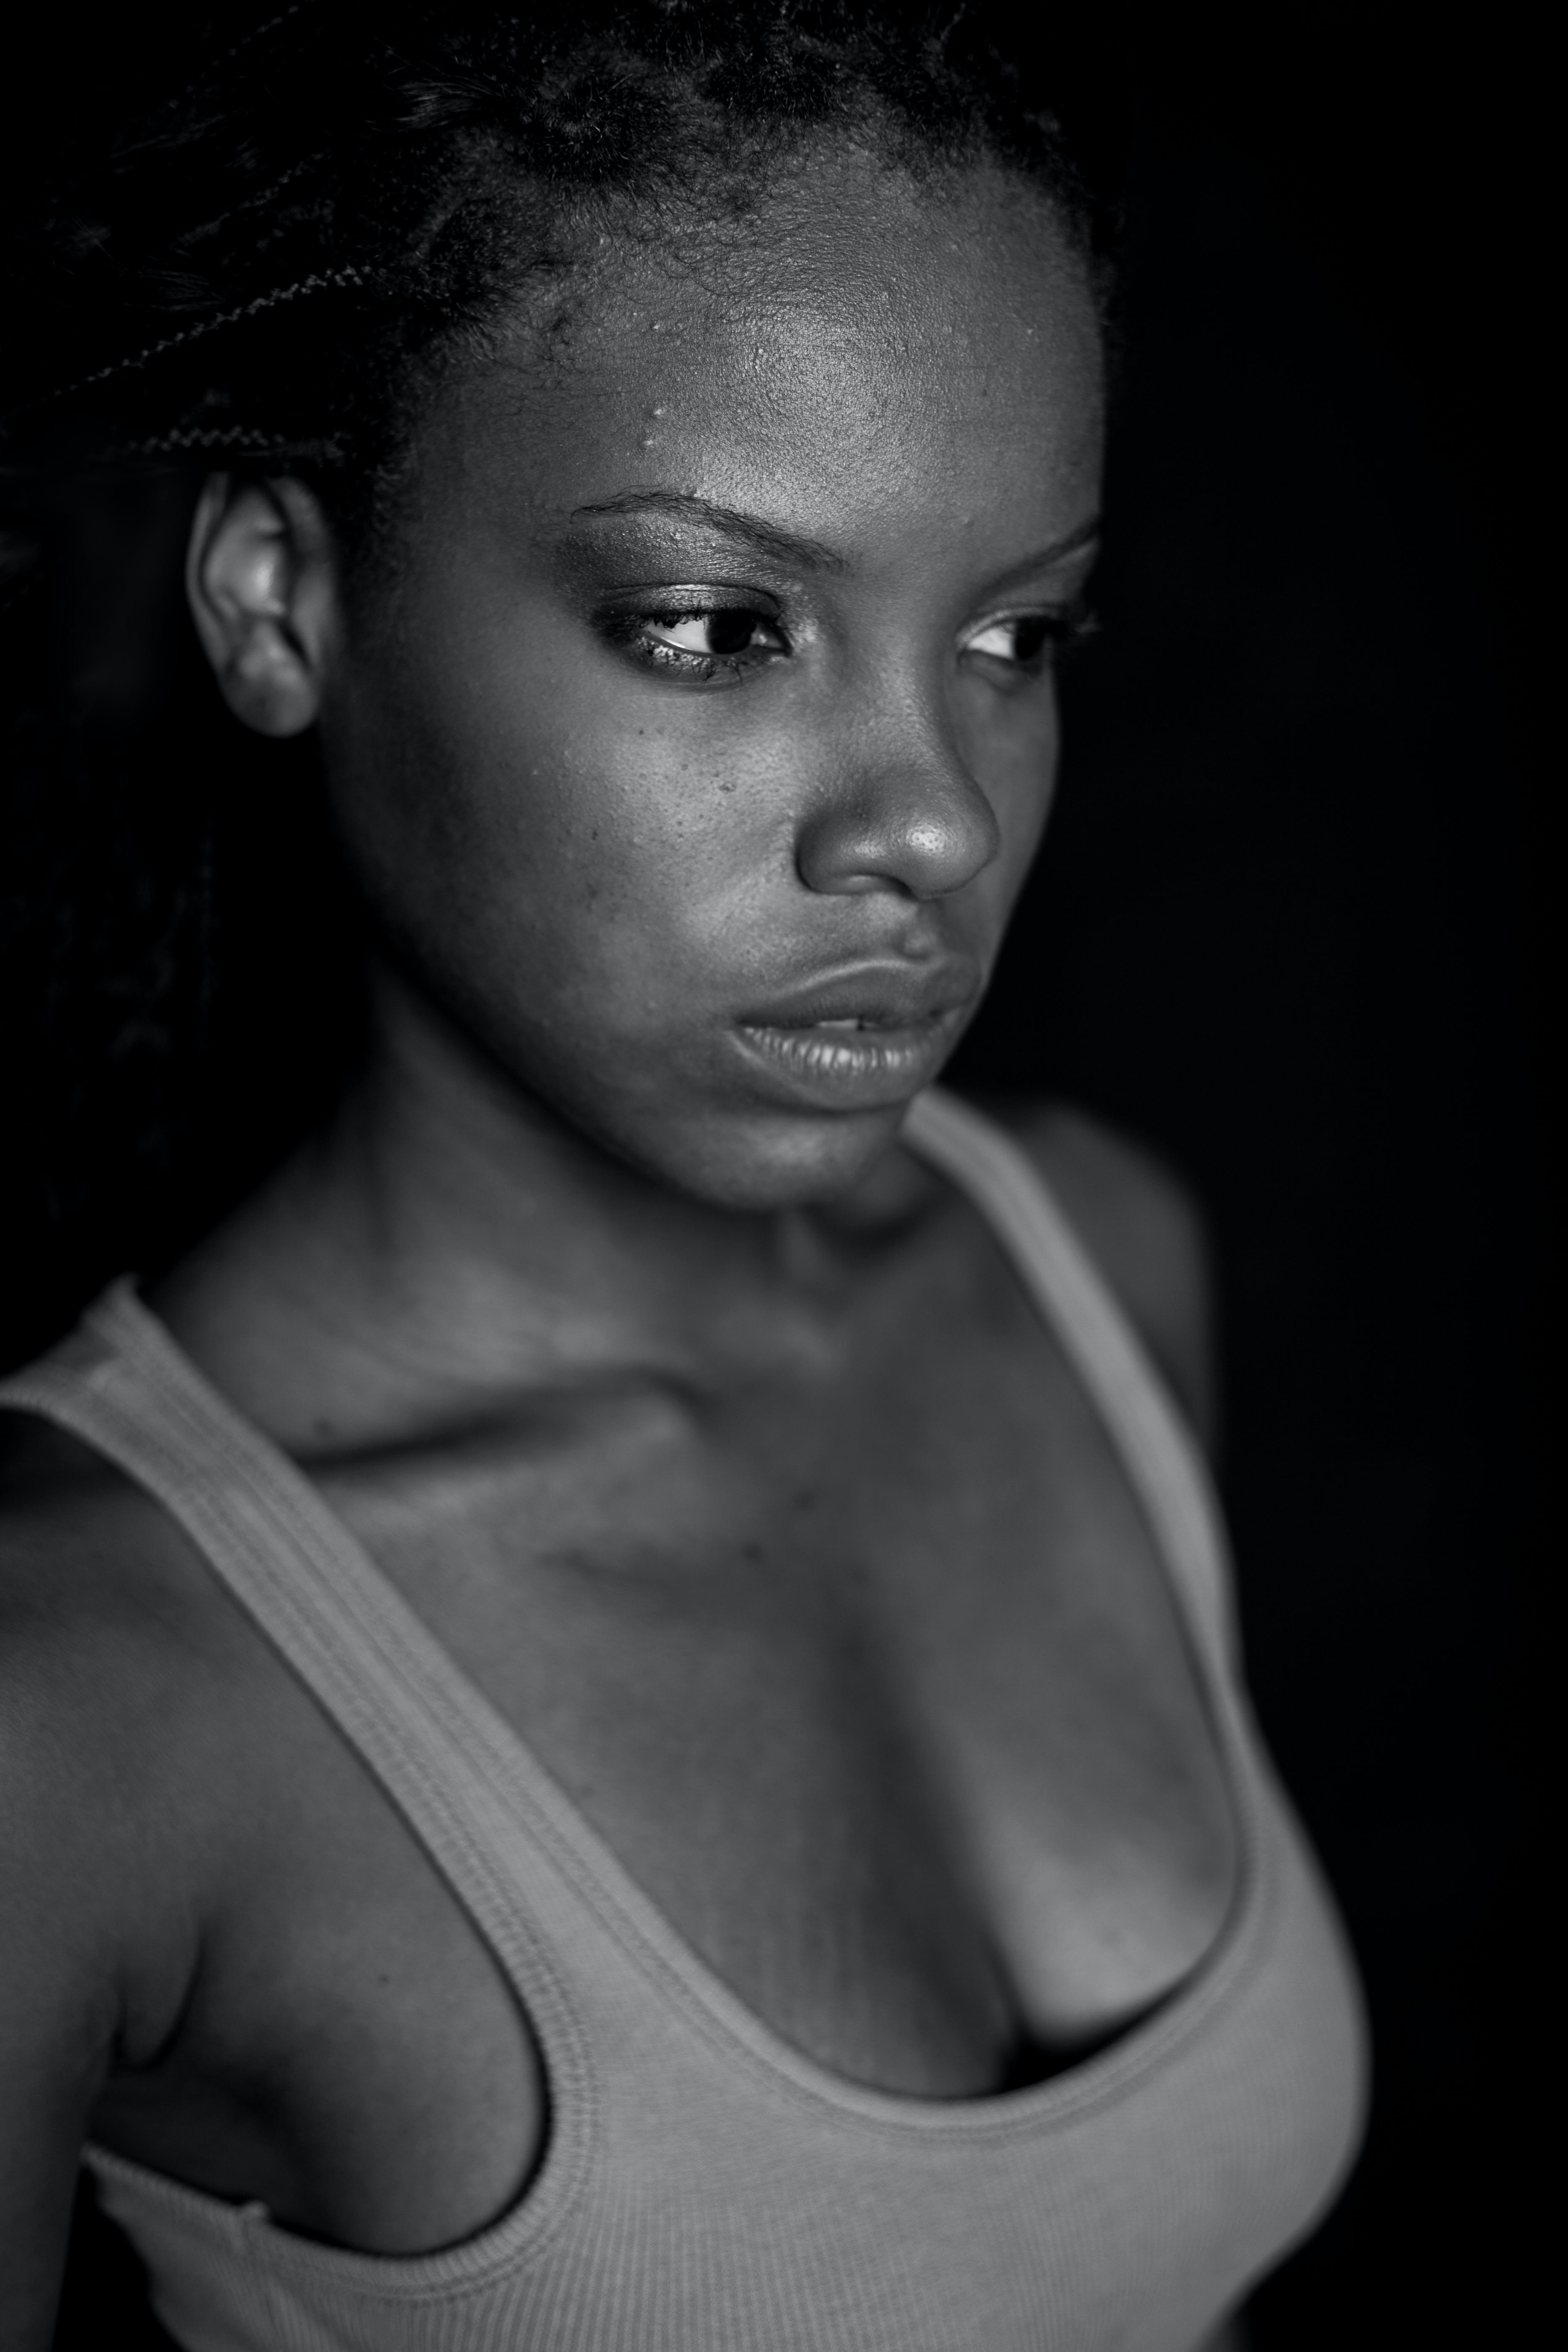 Grayscale Photography of Woman Wearing Tank Top